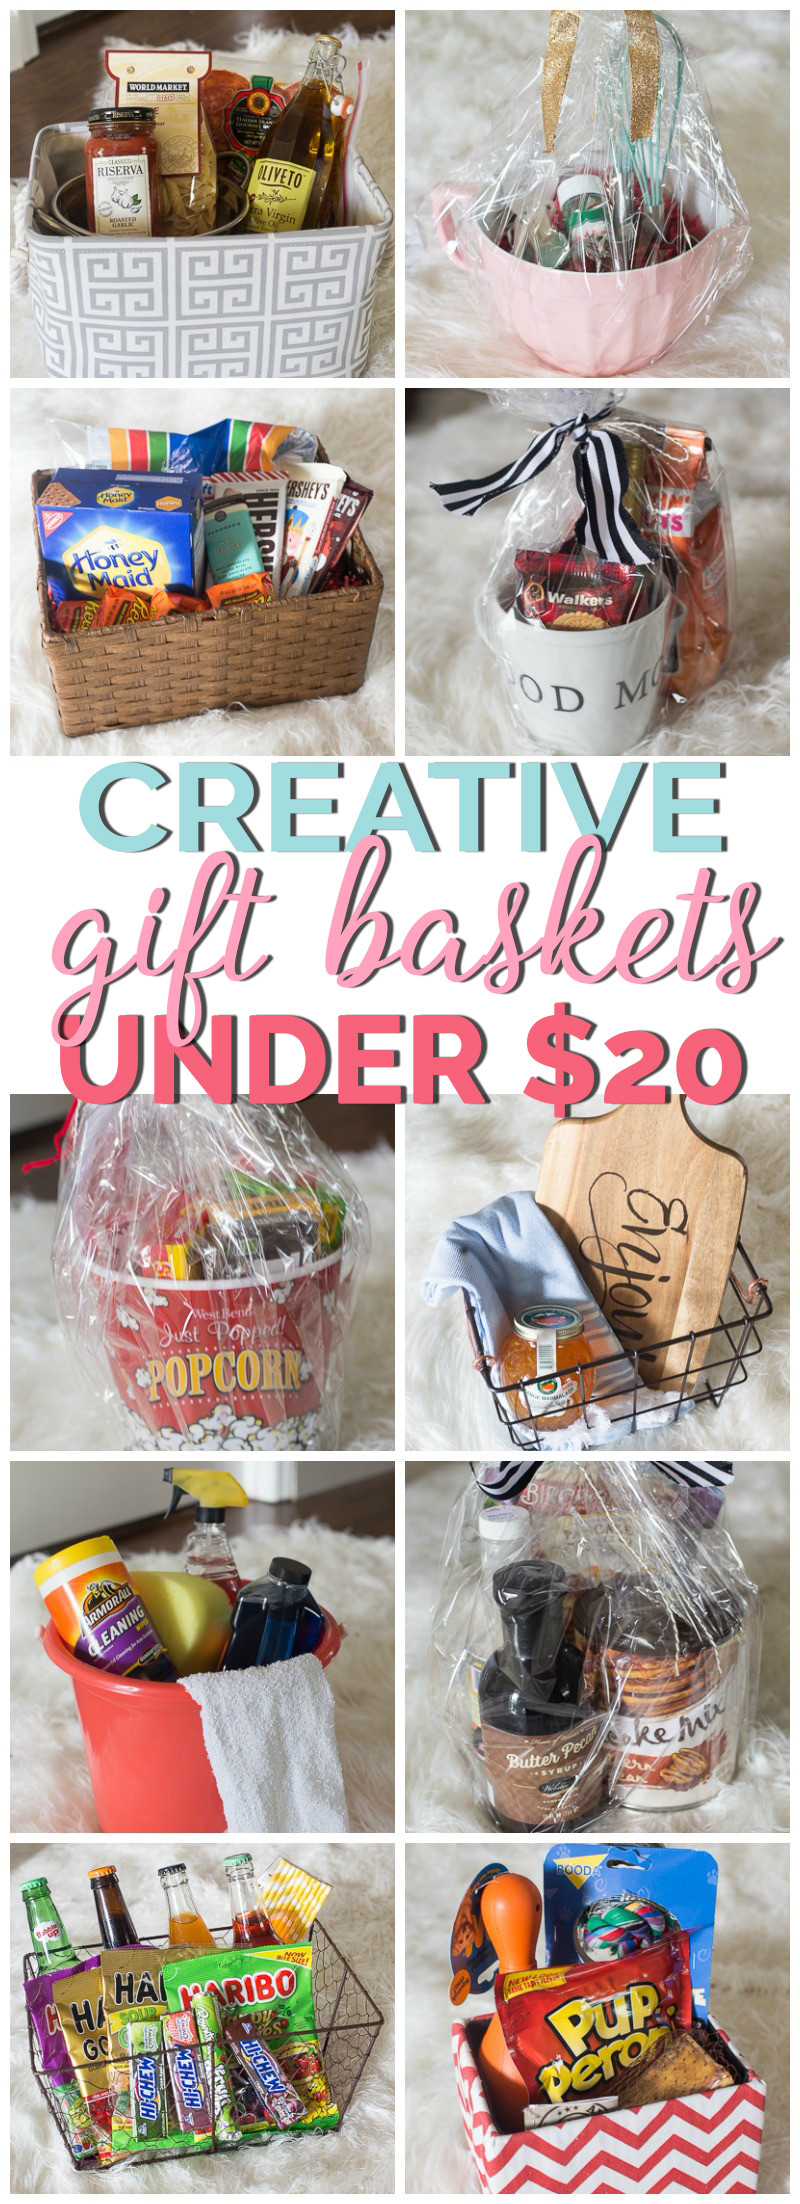 Best ideas about Pinterest Gift Basket Ideas . Save or Pin Creative Gift Basket Ideas Under $20 Now.